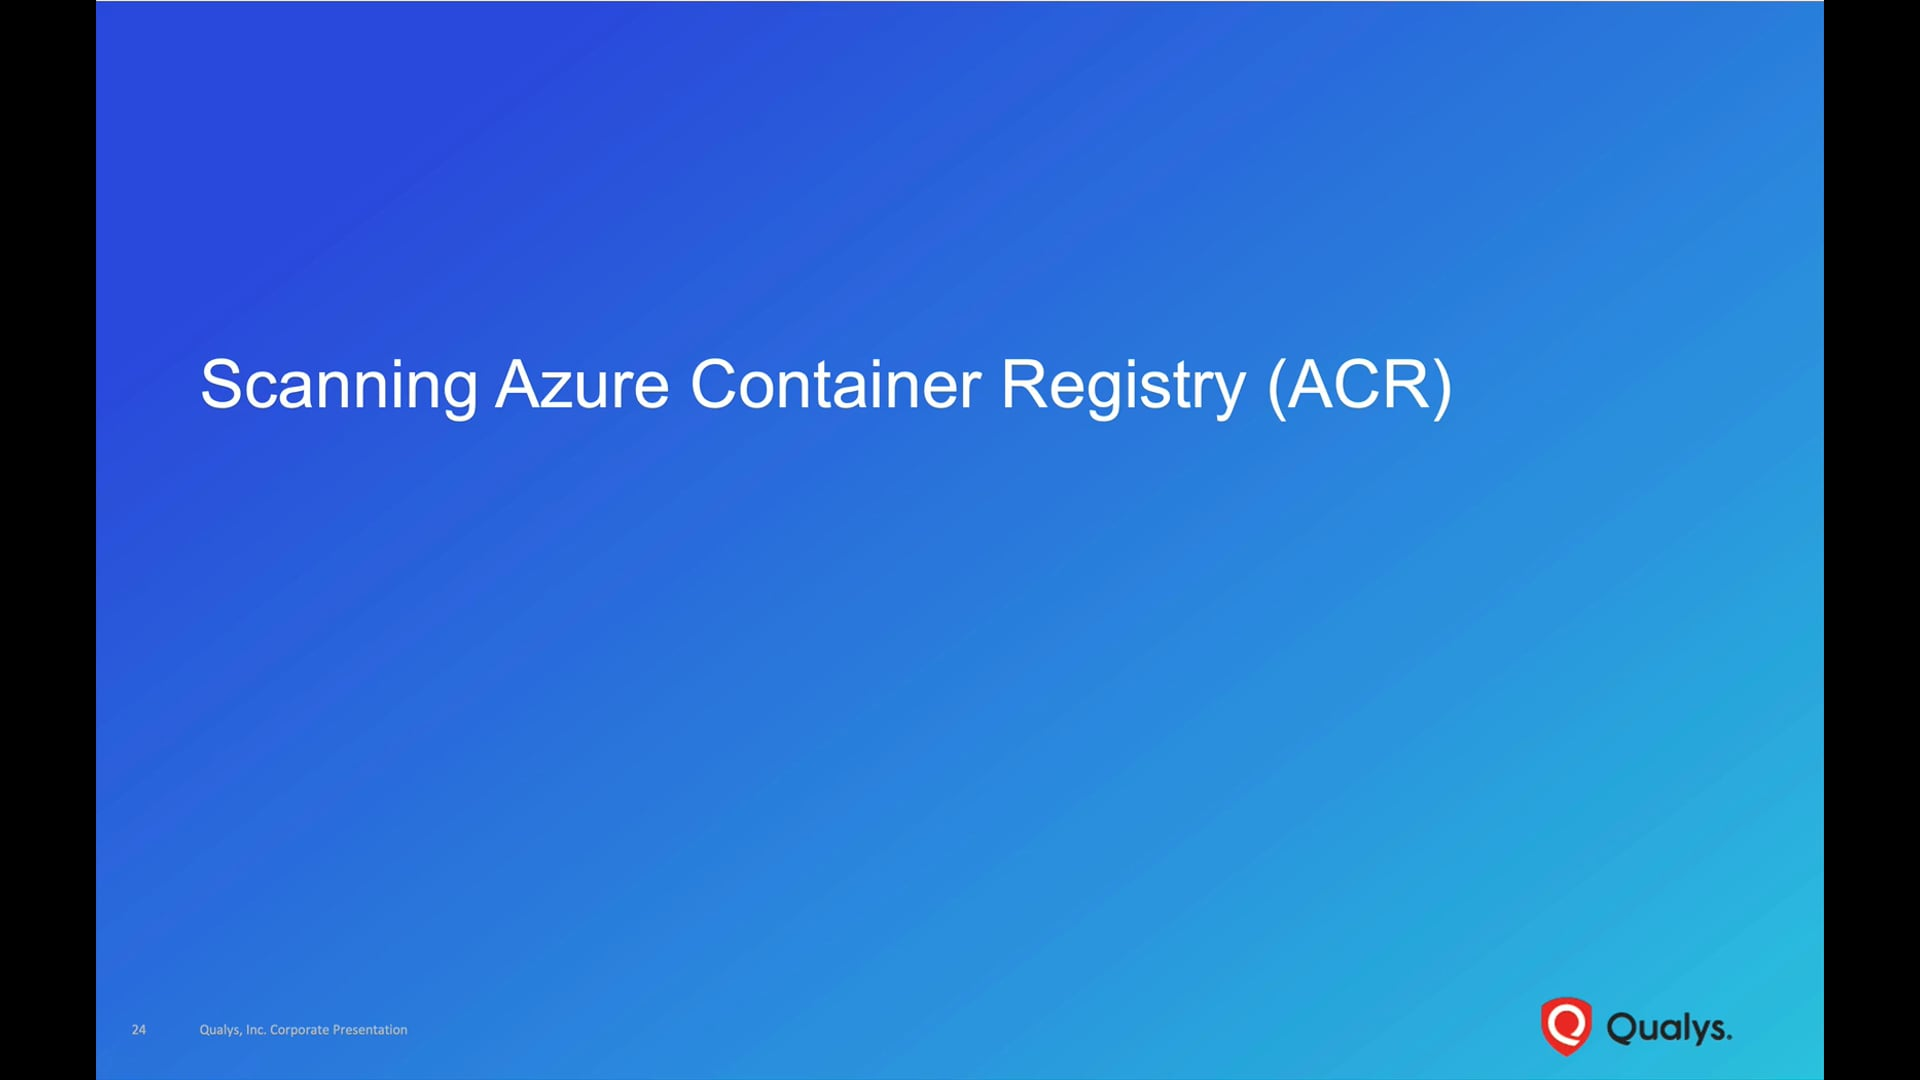 Scanning Azure Container Registry (ACR)